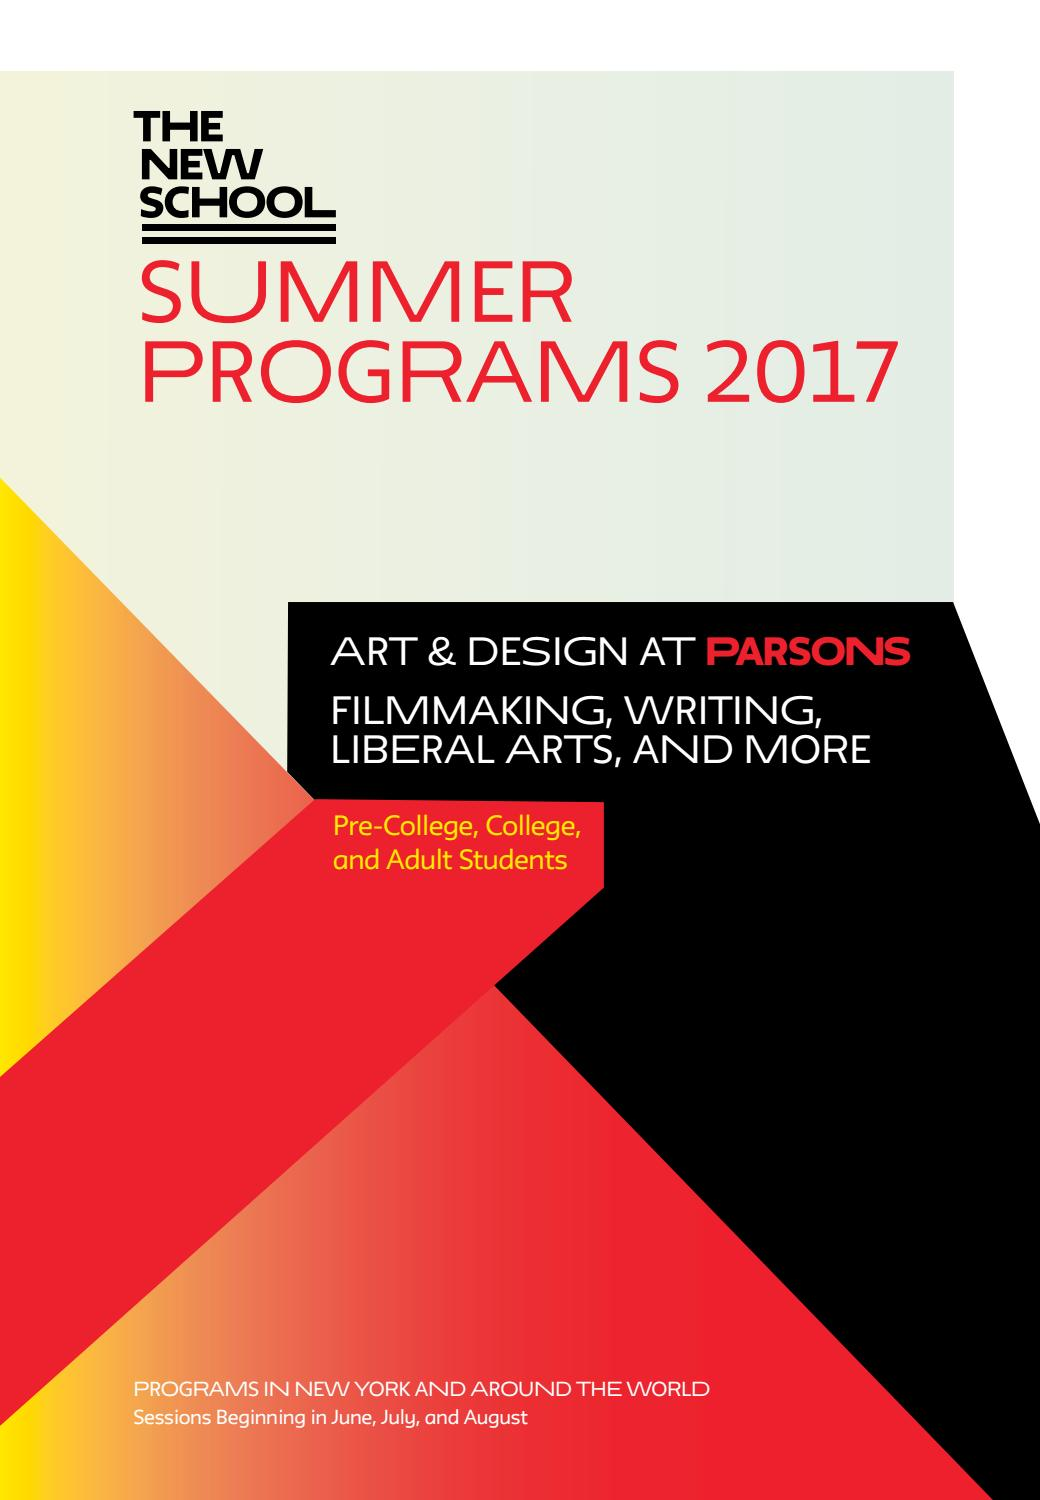 nyu creative writing summer program Explore nyu summer high school programs and get a taste of life as a college student specialized summer programs for a subject-specific and intensive experience, you may want to consider one of the specialized academic programs listed below.